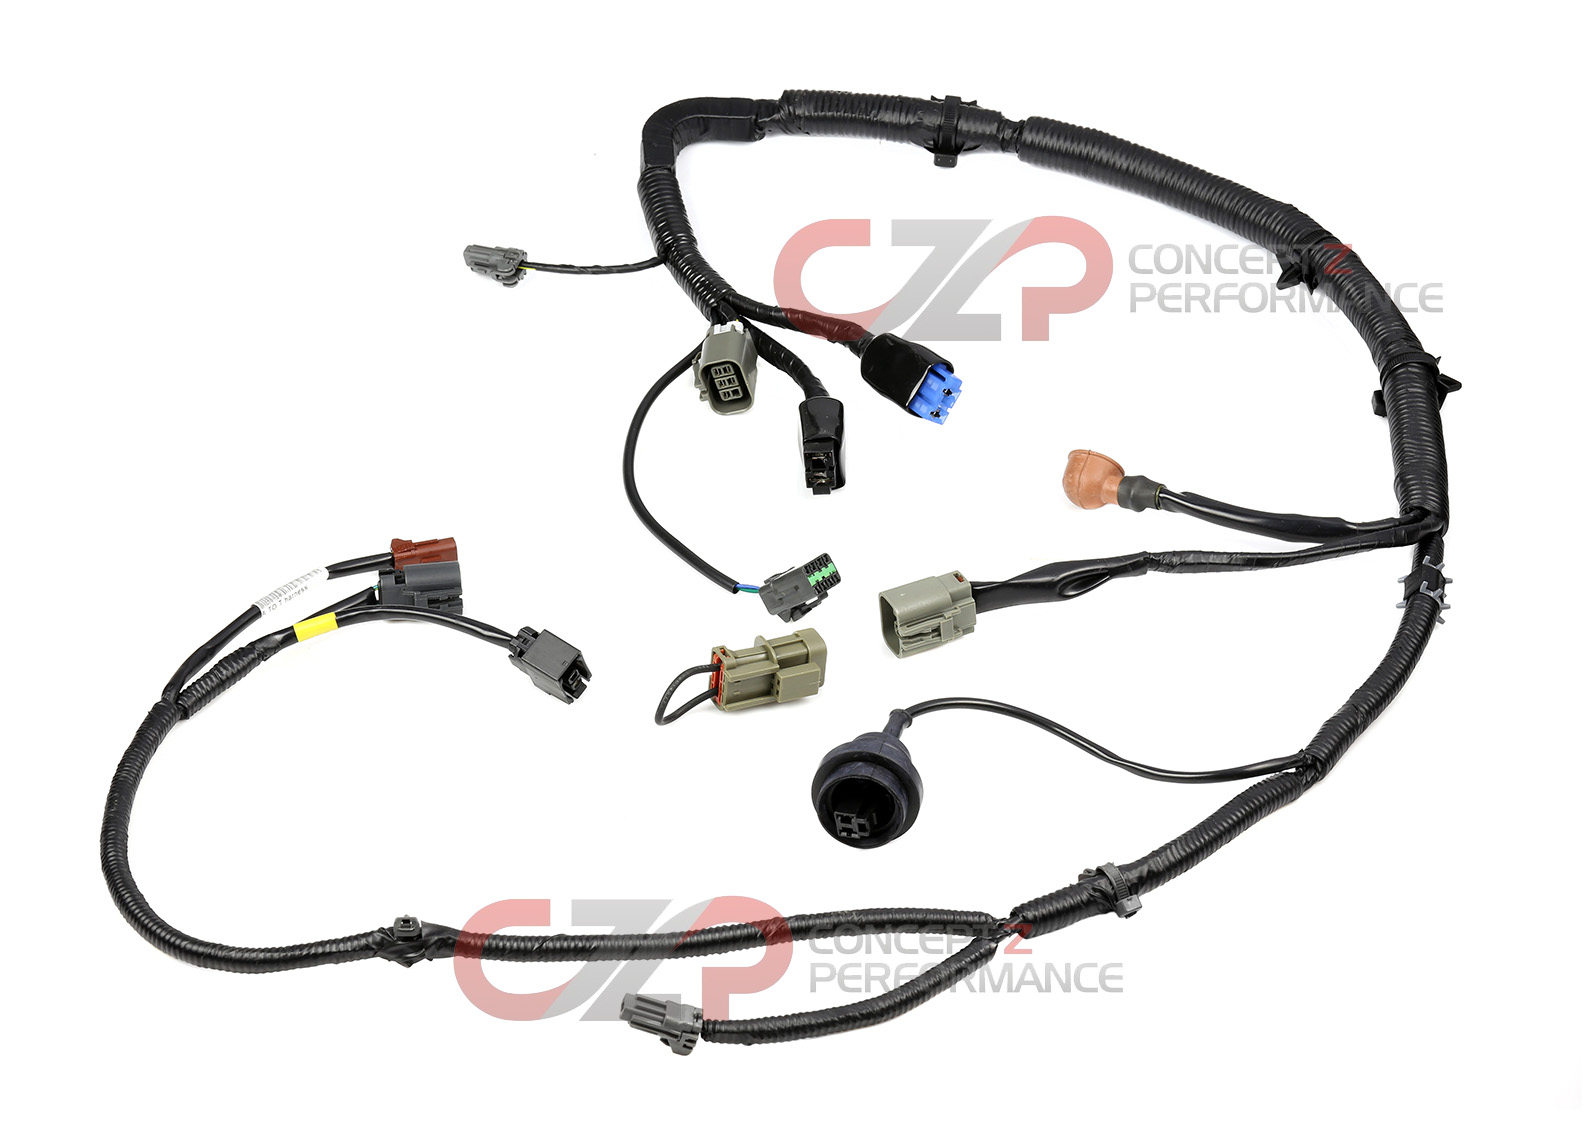 Mini Cooper Transmission Wiring Harness Schematics Engine Diagram Detailed Rh Jvpacks Com 2010 Radio